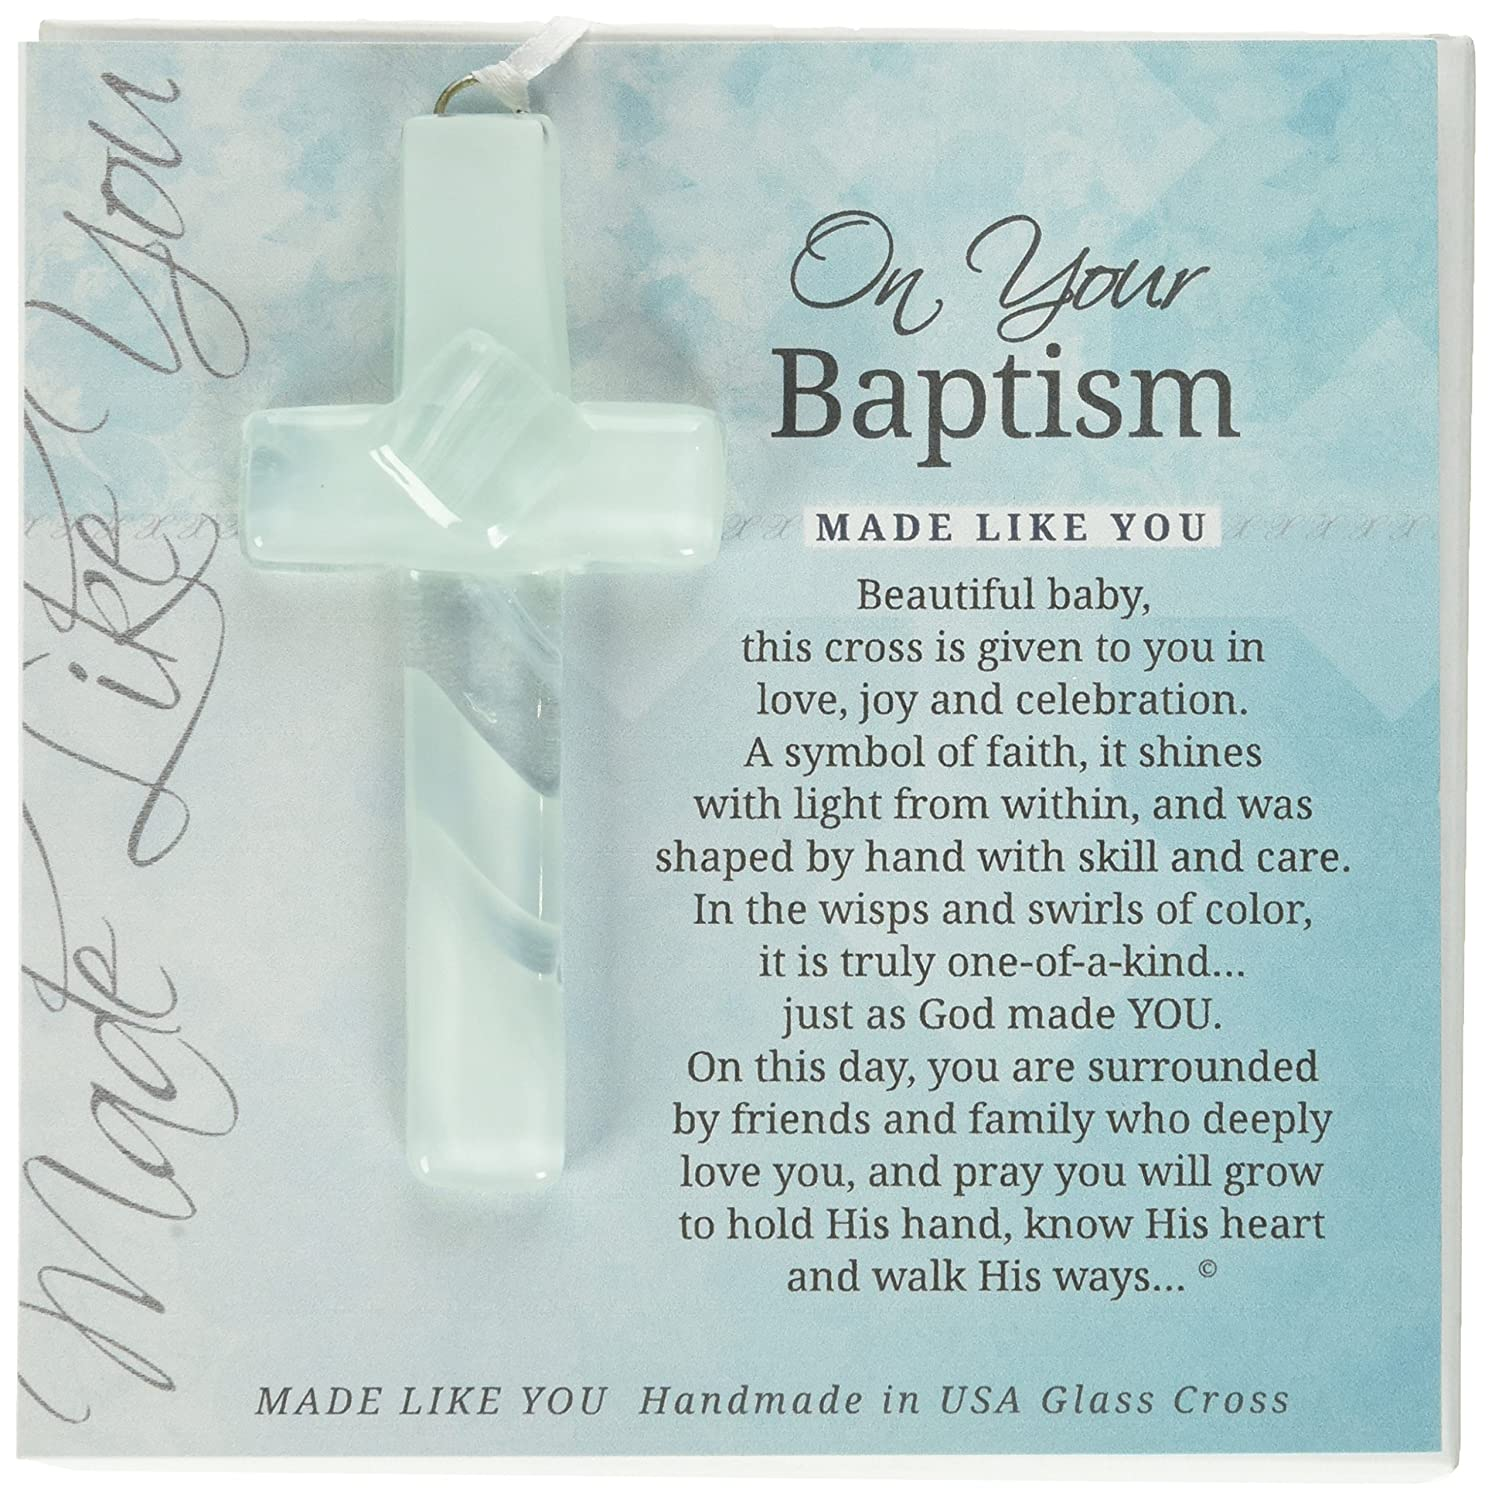 On Your Baptism Beautiful Baby Handmade Aqua Glass Cross The Grandparent Gift Co. 4402